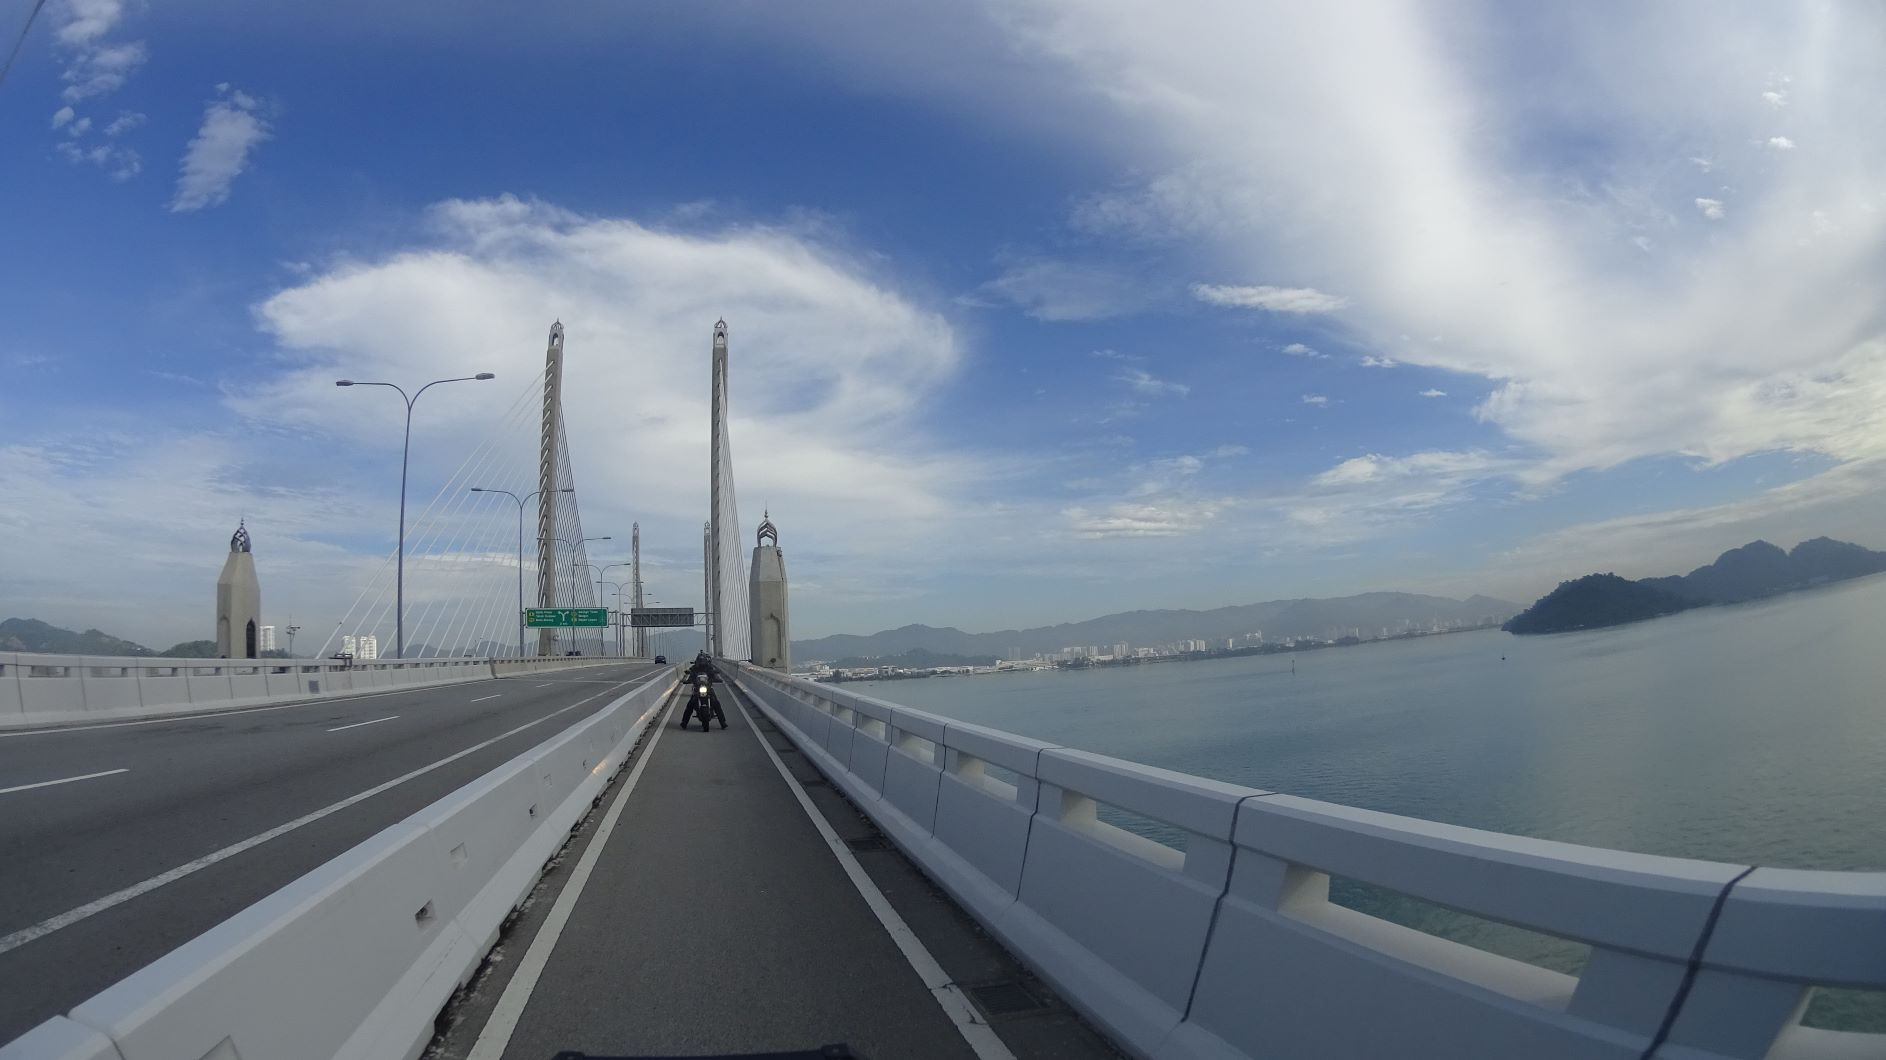 Exit Penang on a 24km magnificent bridge